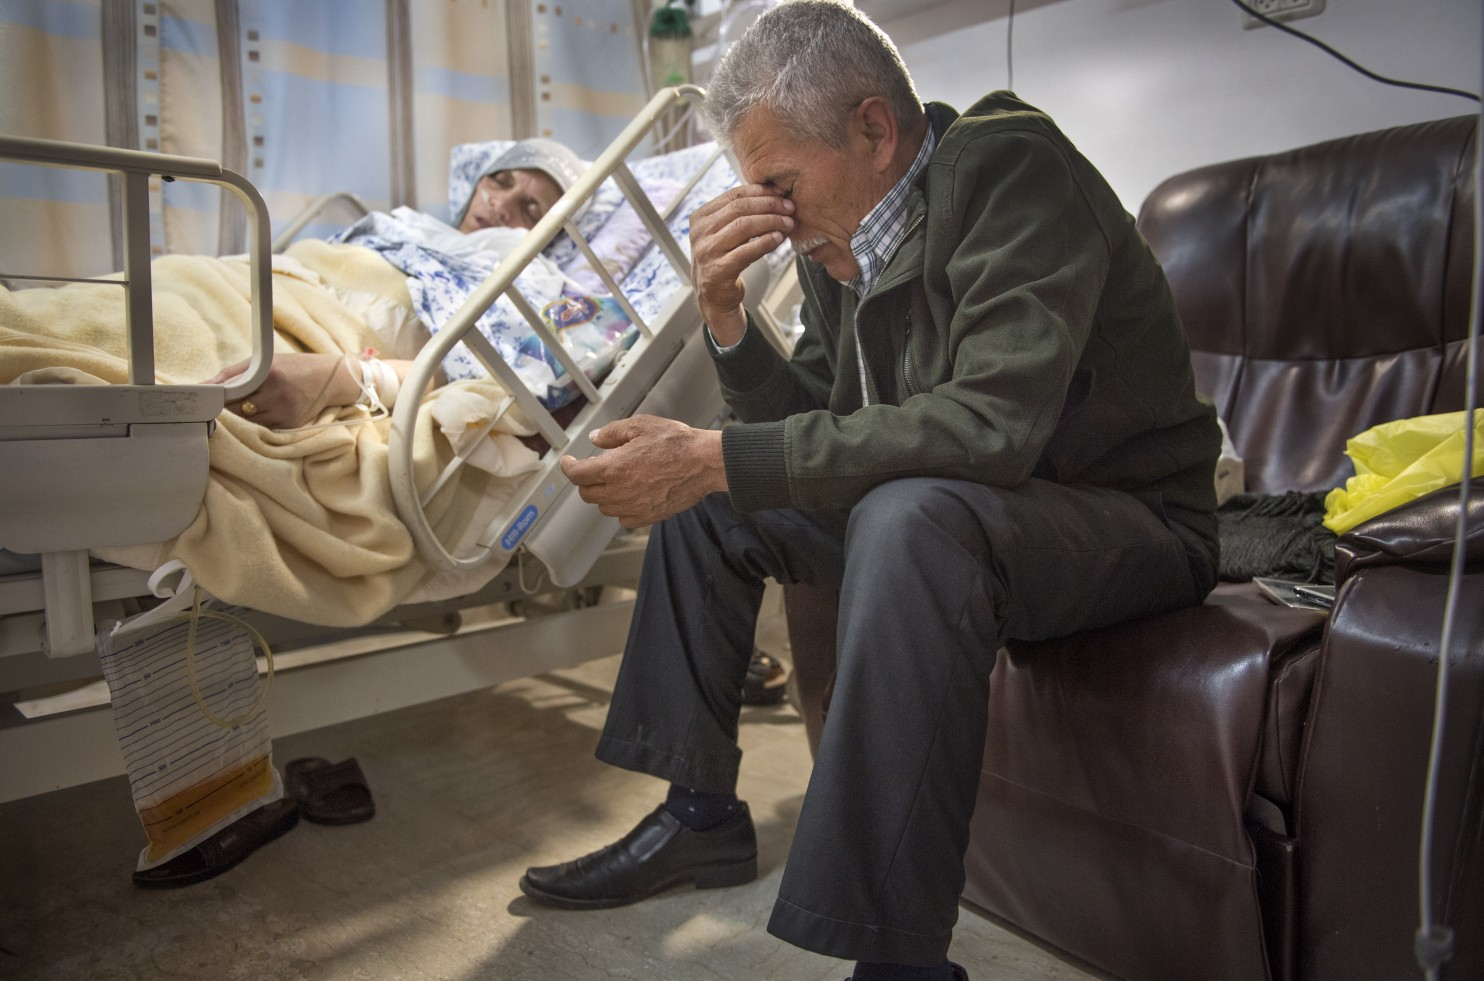 A photo of a man in grief while at the hospital sitting beside a dying patient.